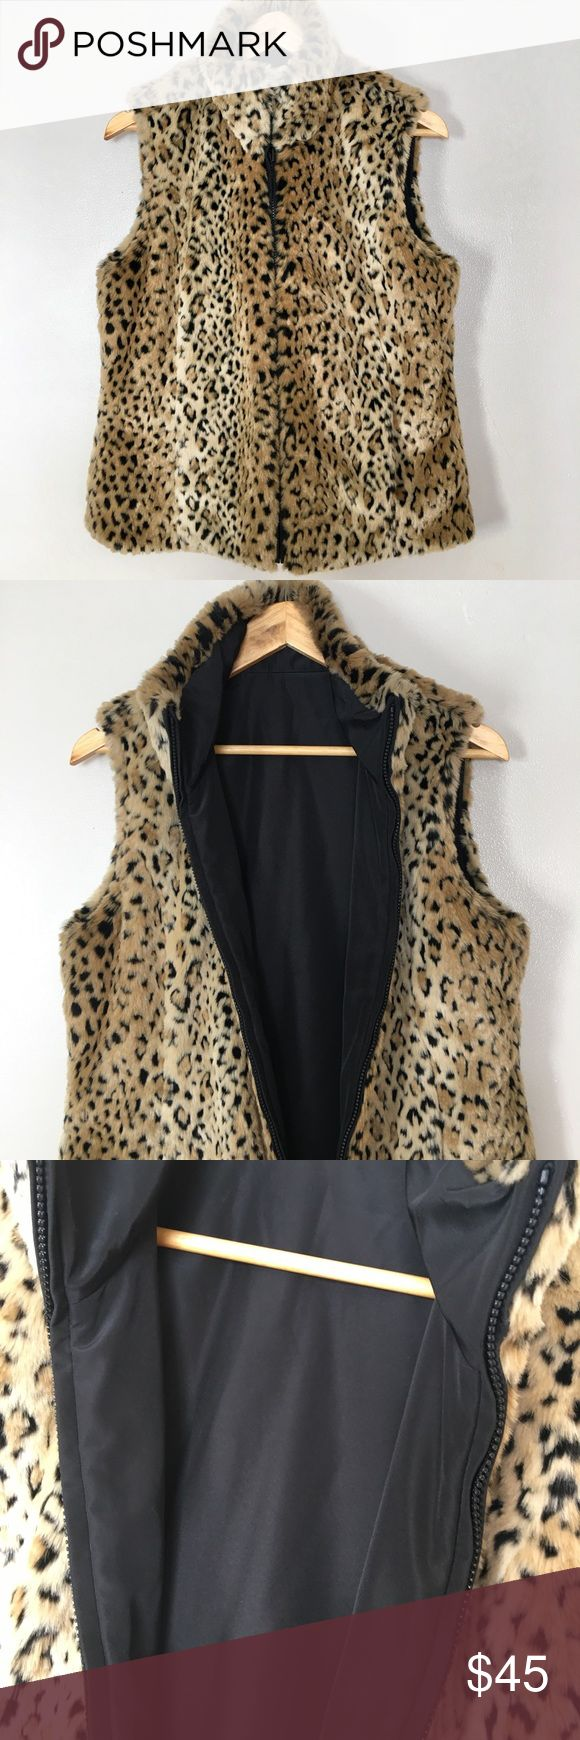 Kristen Blake leopard Reversible Soft Fur Vest Kristen Blake Women's Reversible Soft Fur Animal Print Vest. One side of the vest is a solid color made of 100% Polyester and the other side is a faux fur lining made of 81% Modacrylic and 19% Polyester Reversible zip up front with two zip up front pockets and is reversible Two side pockets (both sides) Tan Leopard: Leopard print/Black lining Kristen Blake Jackets & Coats Vests